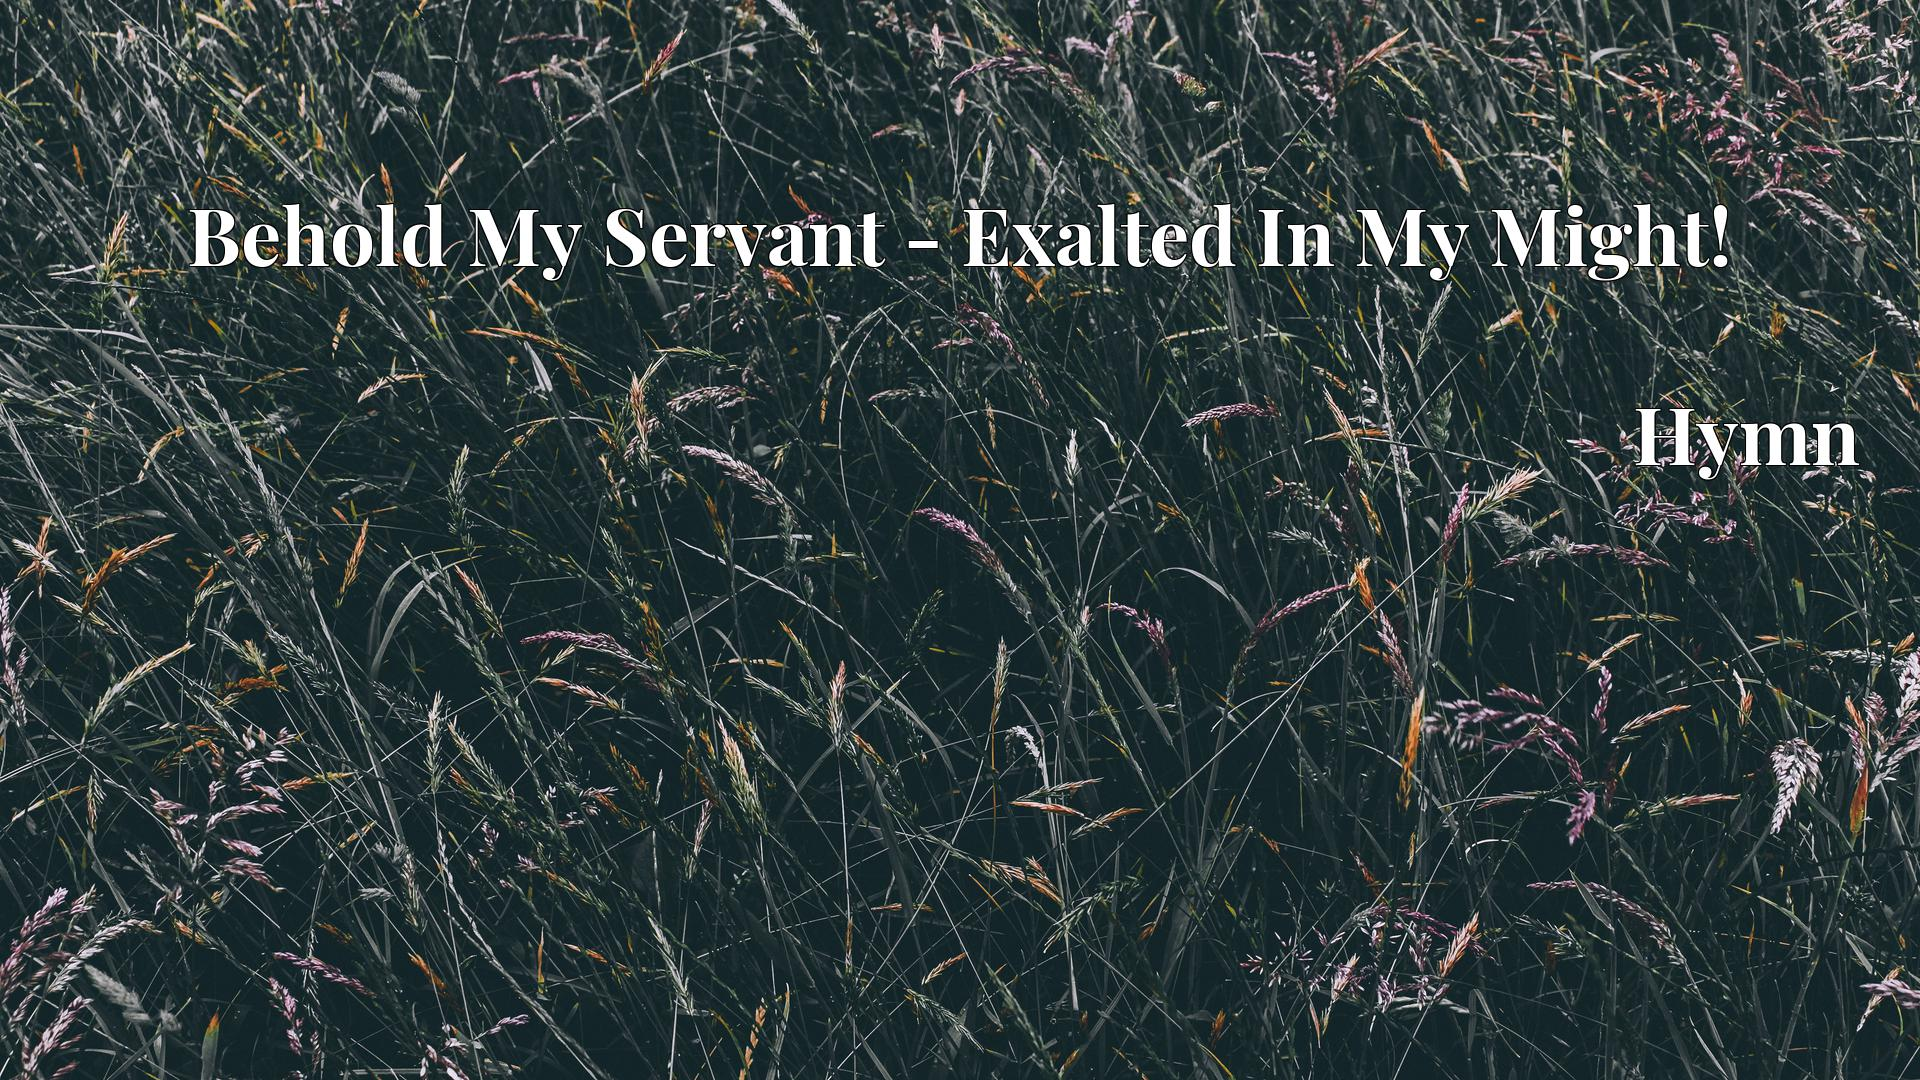 Behold My Servant - Exalted In My Might! - Hymn